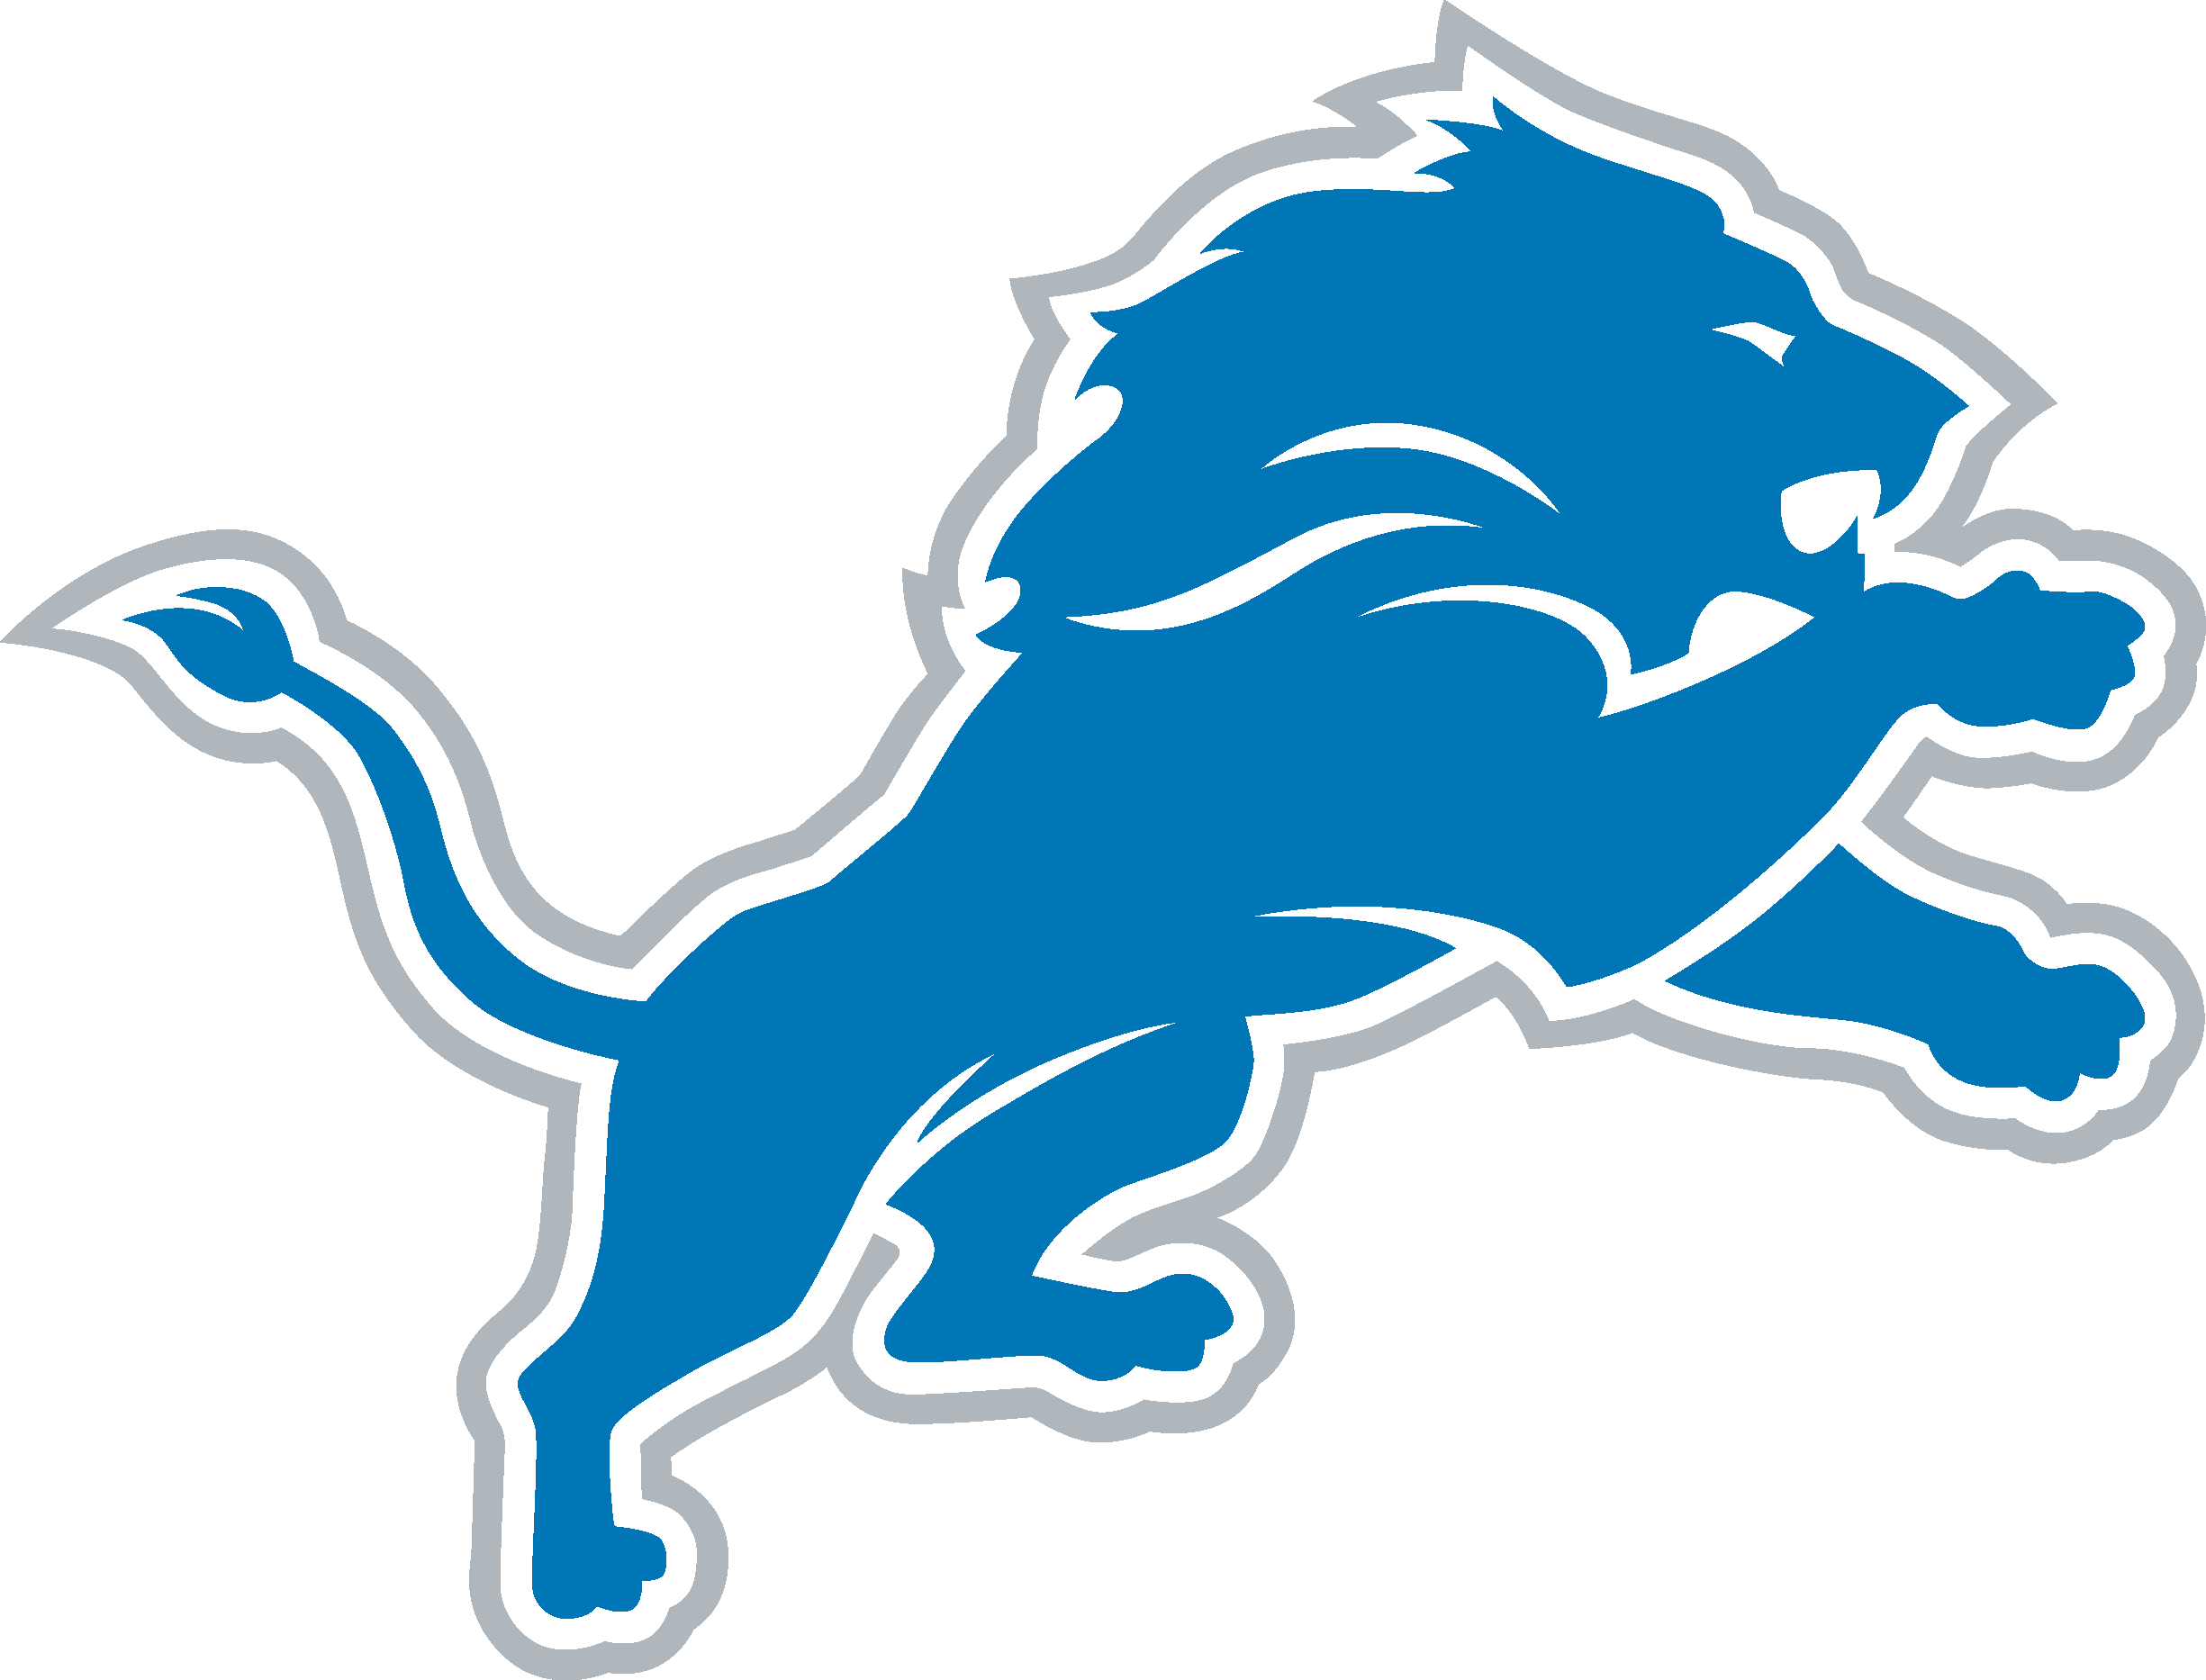 Detroit Lions Clipart at GetDrawings.com.